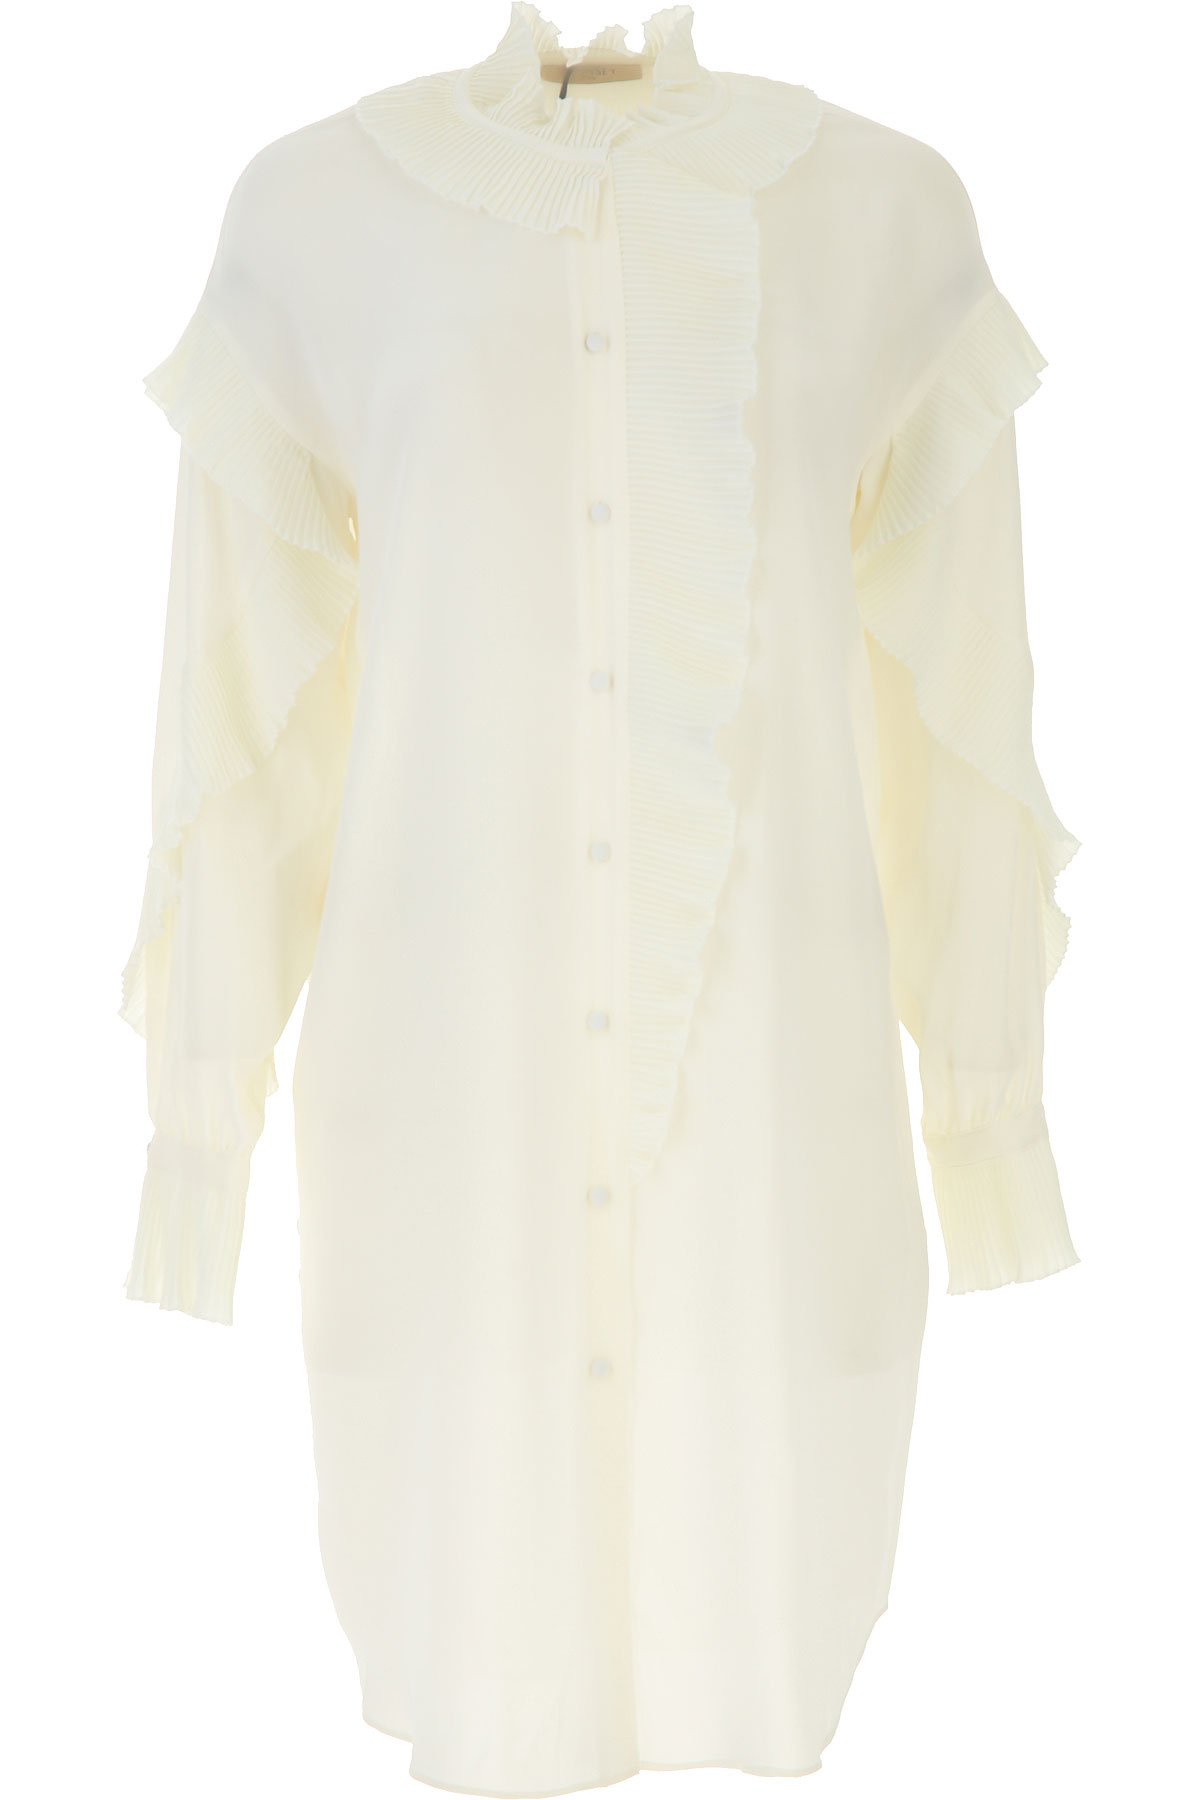 Twin Set by Simona Barbieri Dress for Women, Evening Cocktail Party On Sale, Cream, viscosa, 2019, 4 6 8